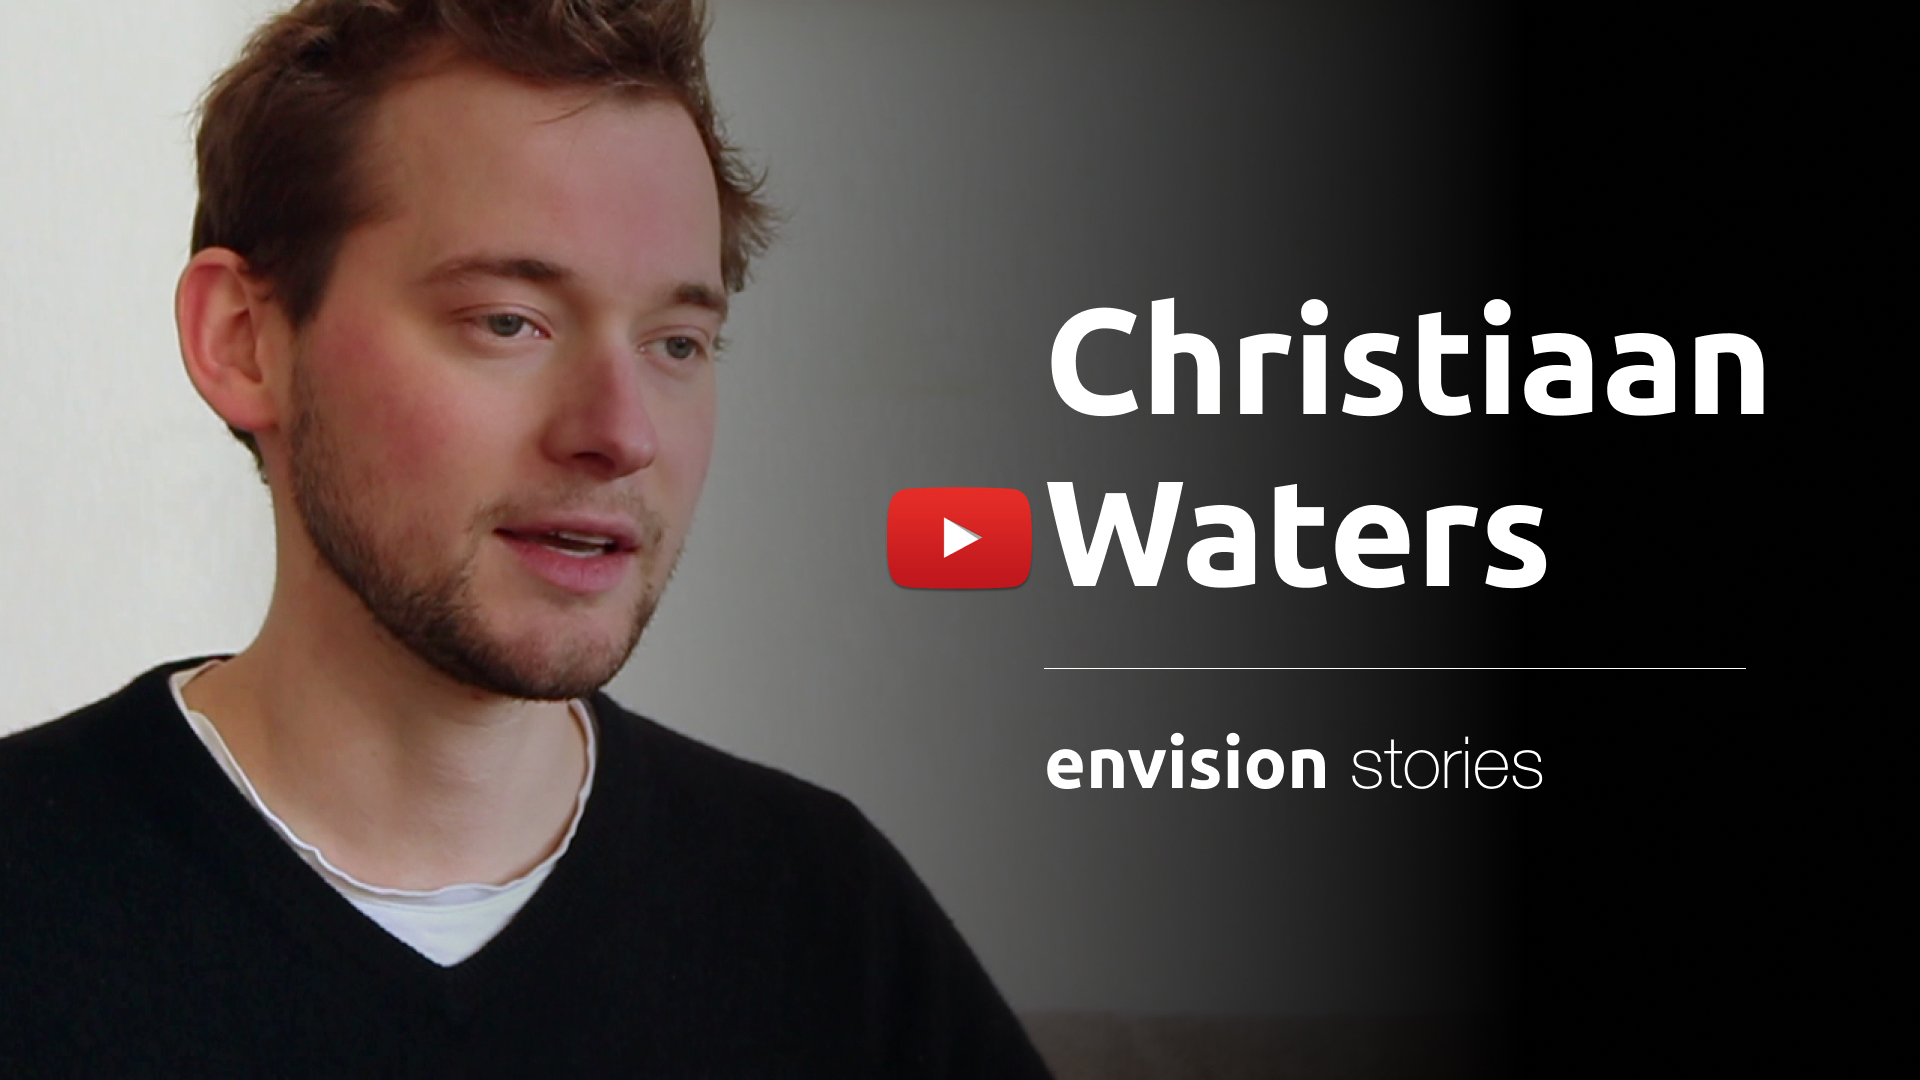 Video of Christiaan Waters talking about his experiences with Envision